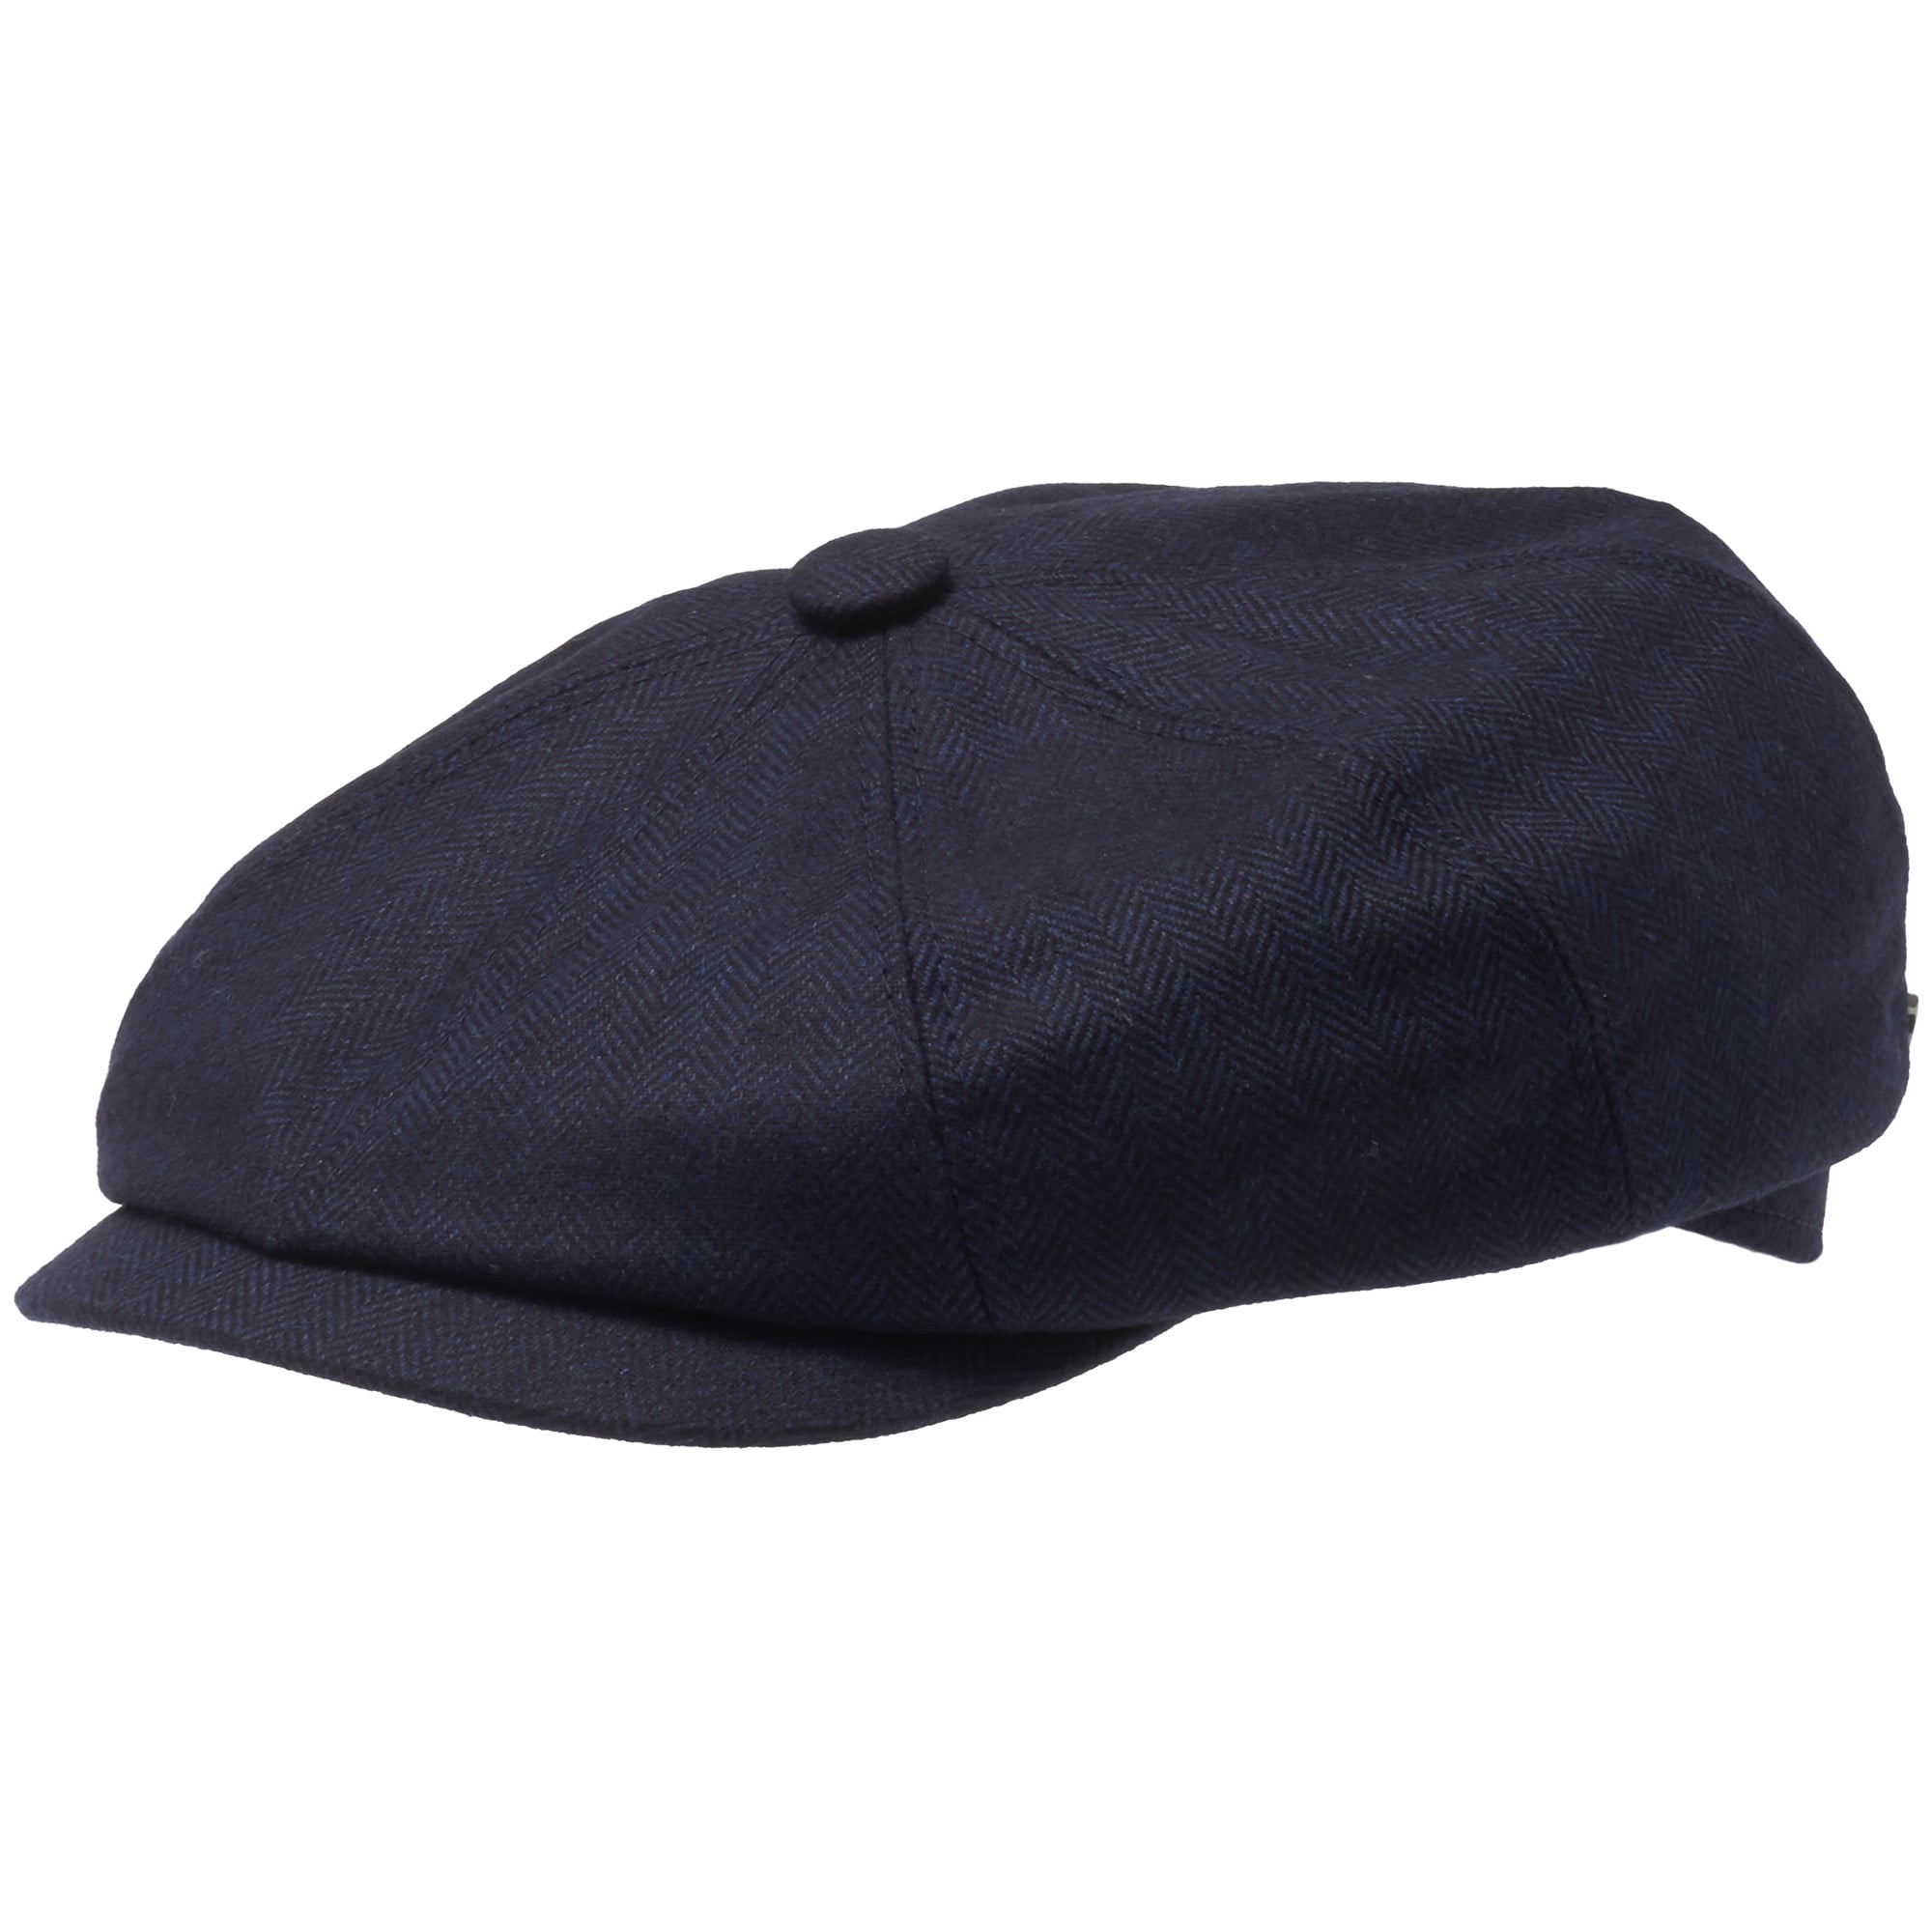 Stetson Navy Wool and Silk Hattera 6840501  a5df9a2384dc